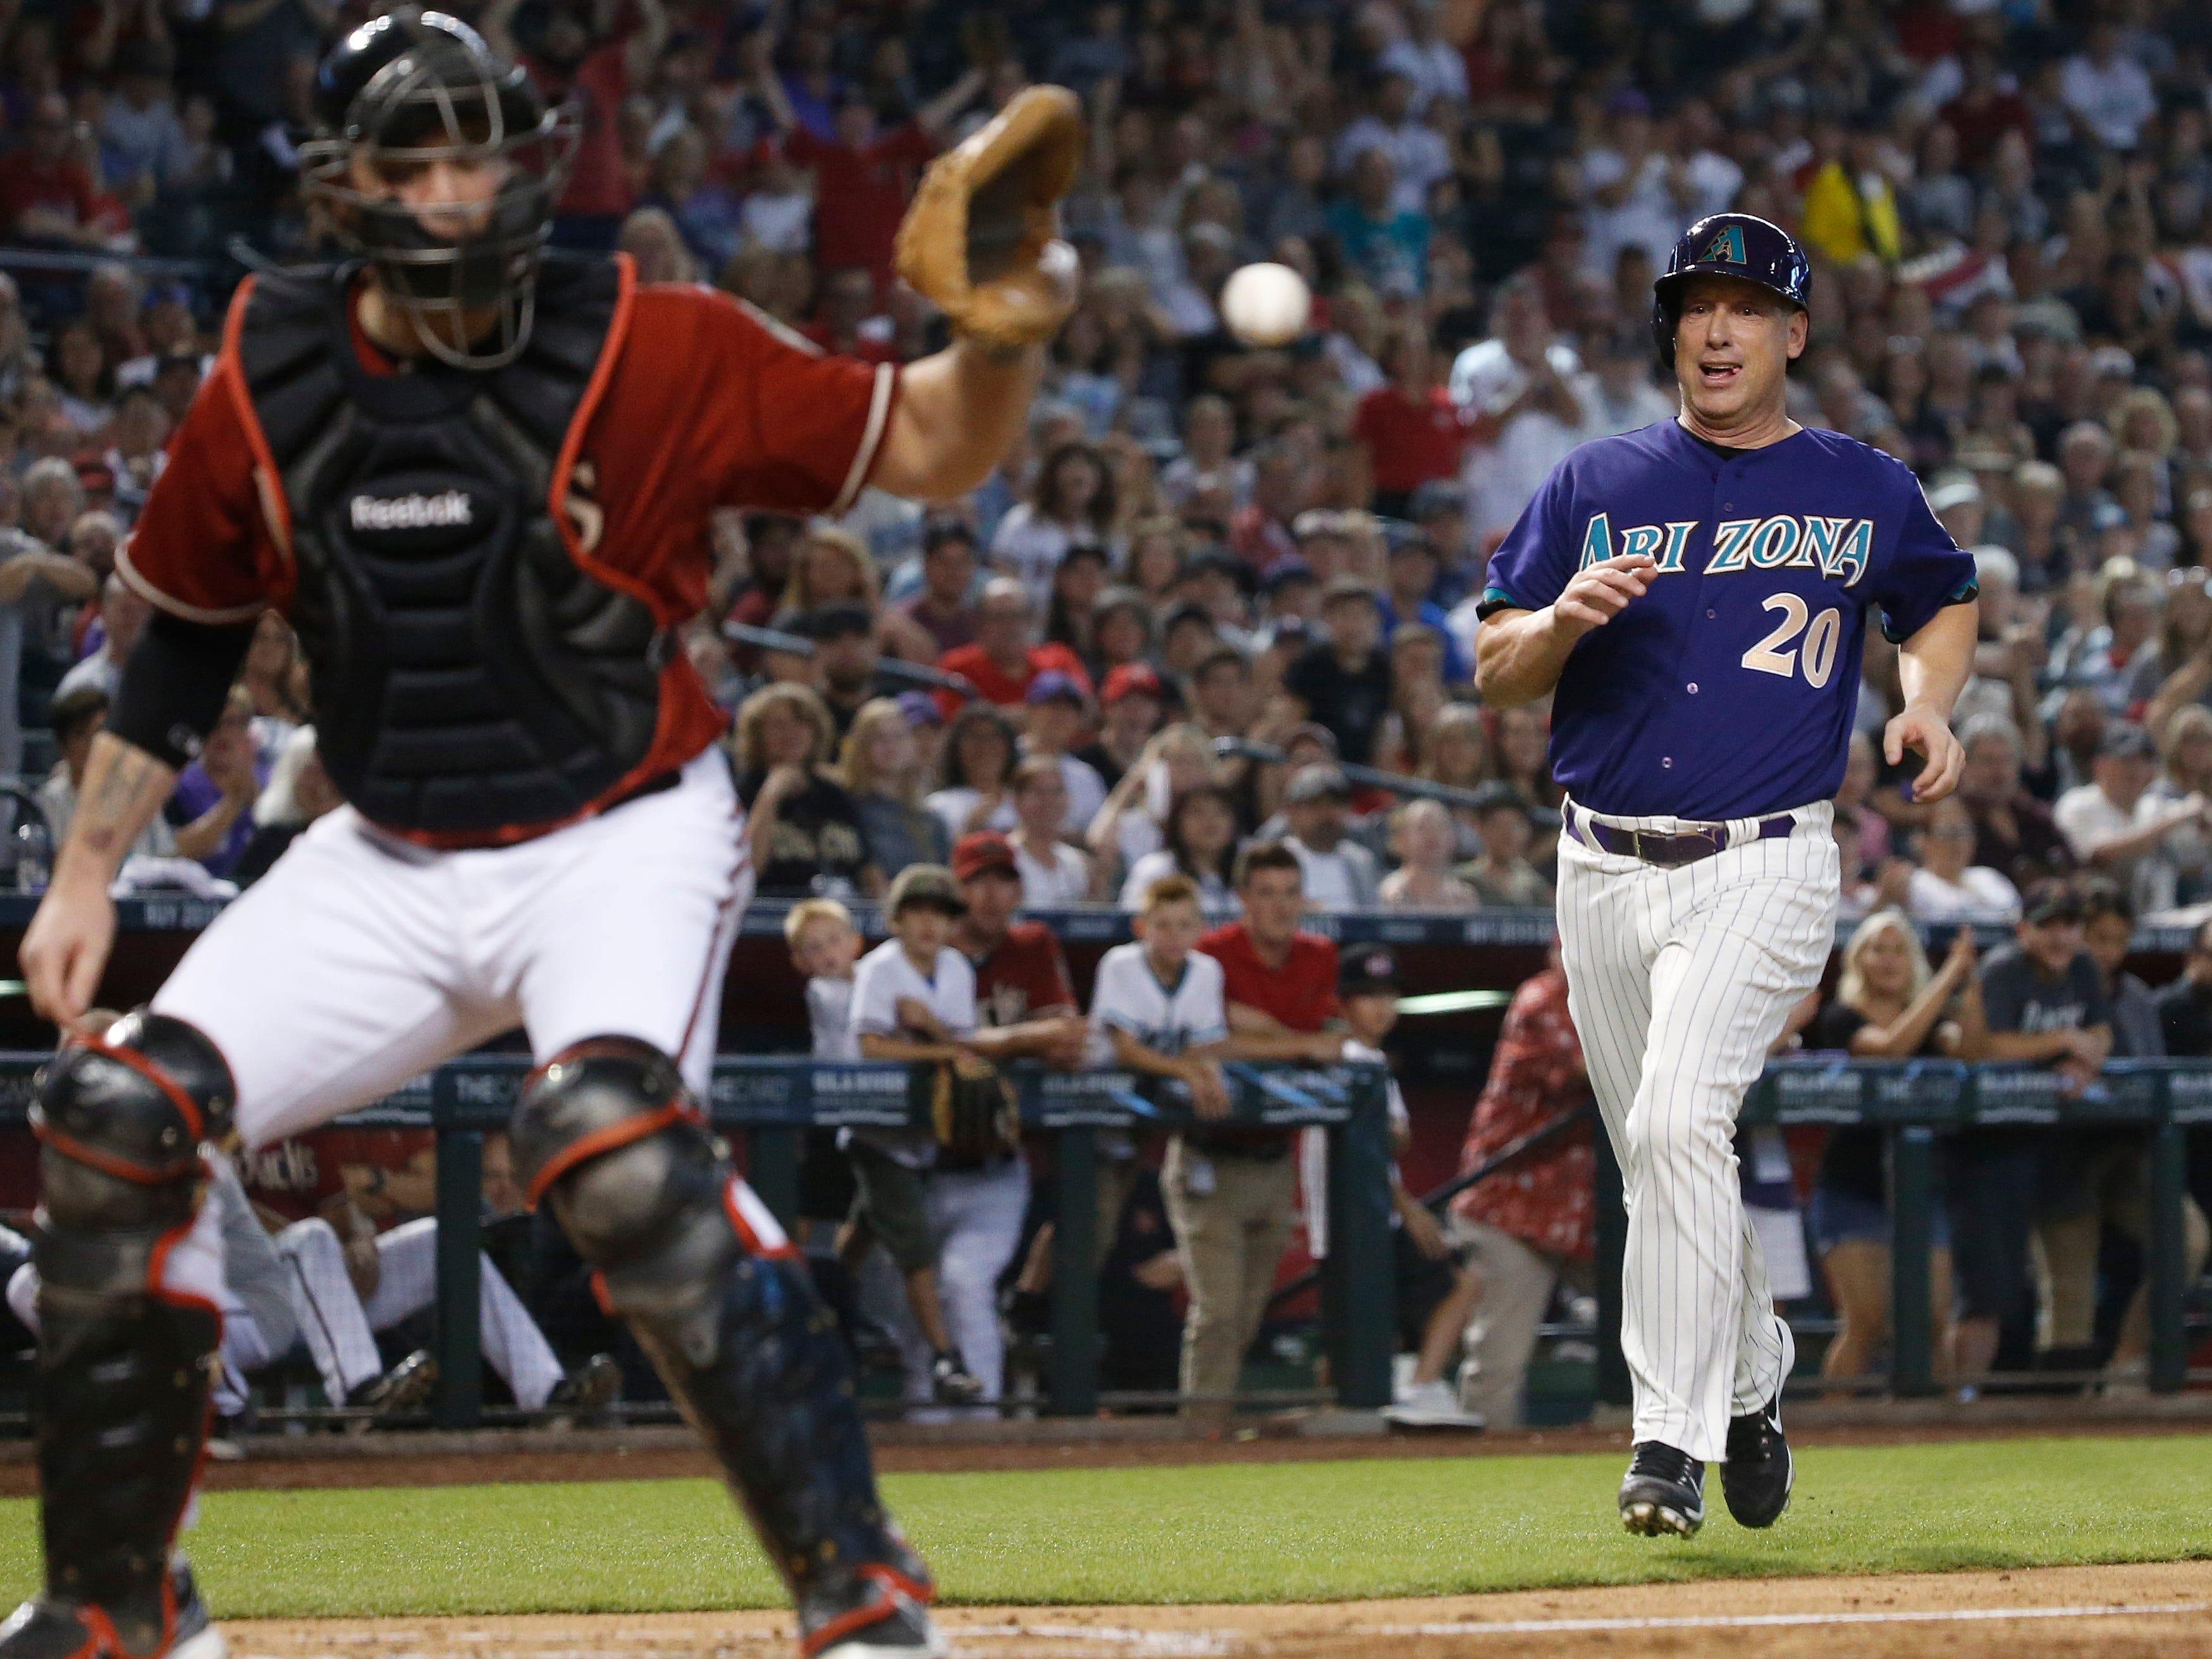 Diamondbacks Red team's Chris Snyder catches a throw at home before tagging out Purple team's Luis Gonzalez (20) during the Generations Diamondbacks Alumni game at Chase Field in Phoenix, Ariz. on Aug. 4, 2018.